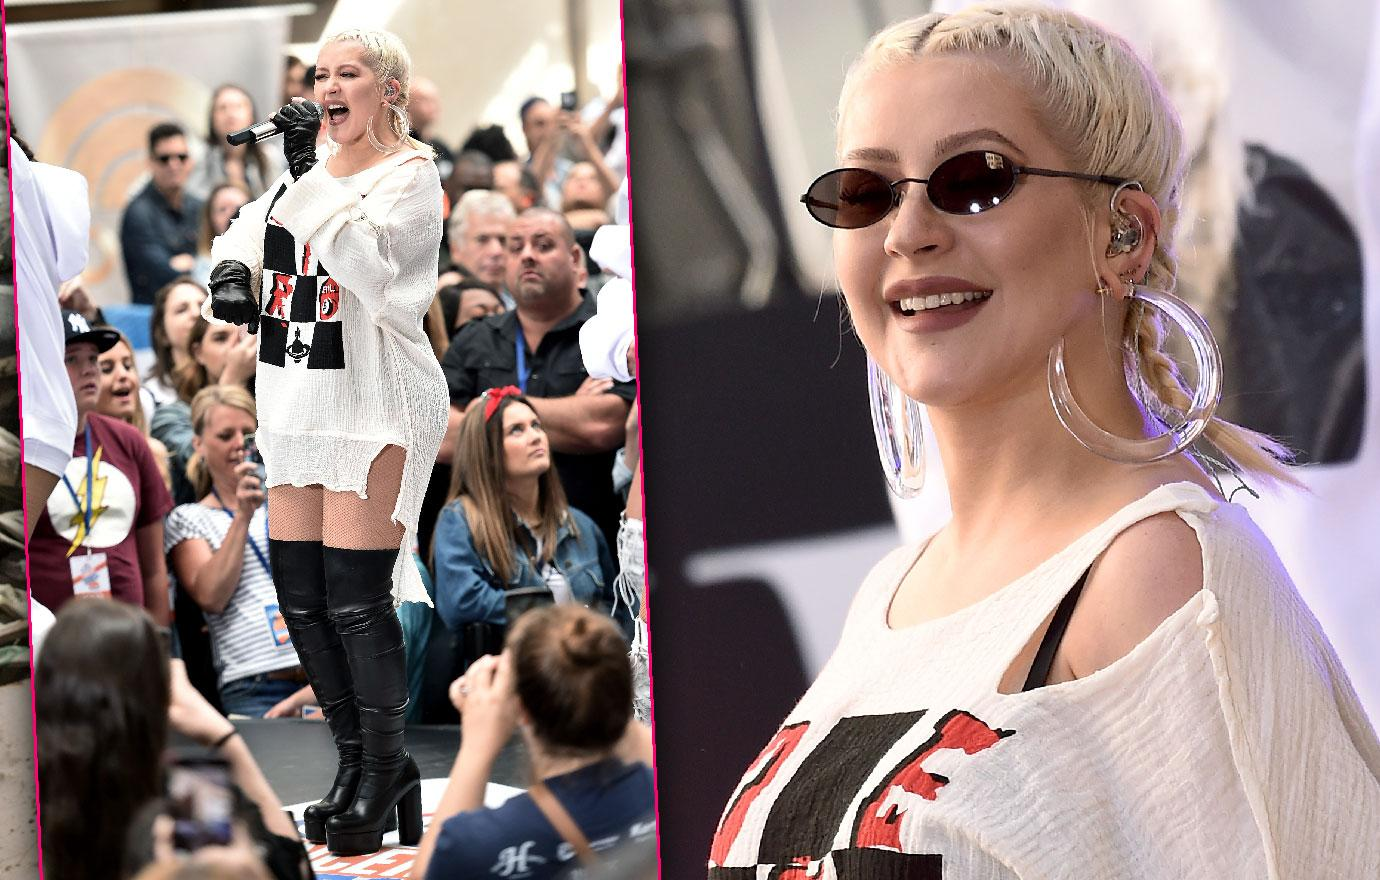 Christina Aguilera Looks Curvy In Today Show Appearance